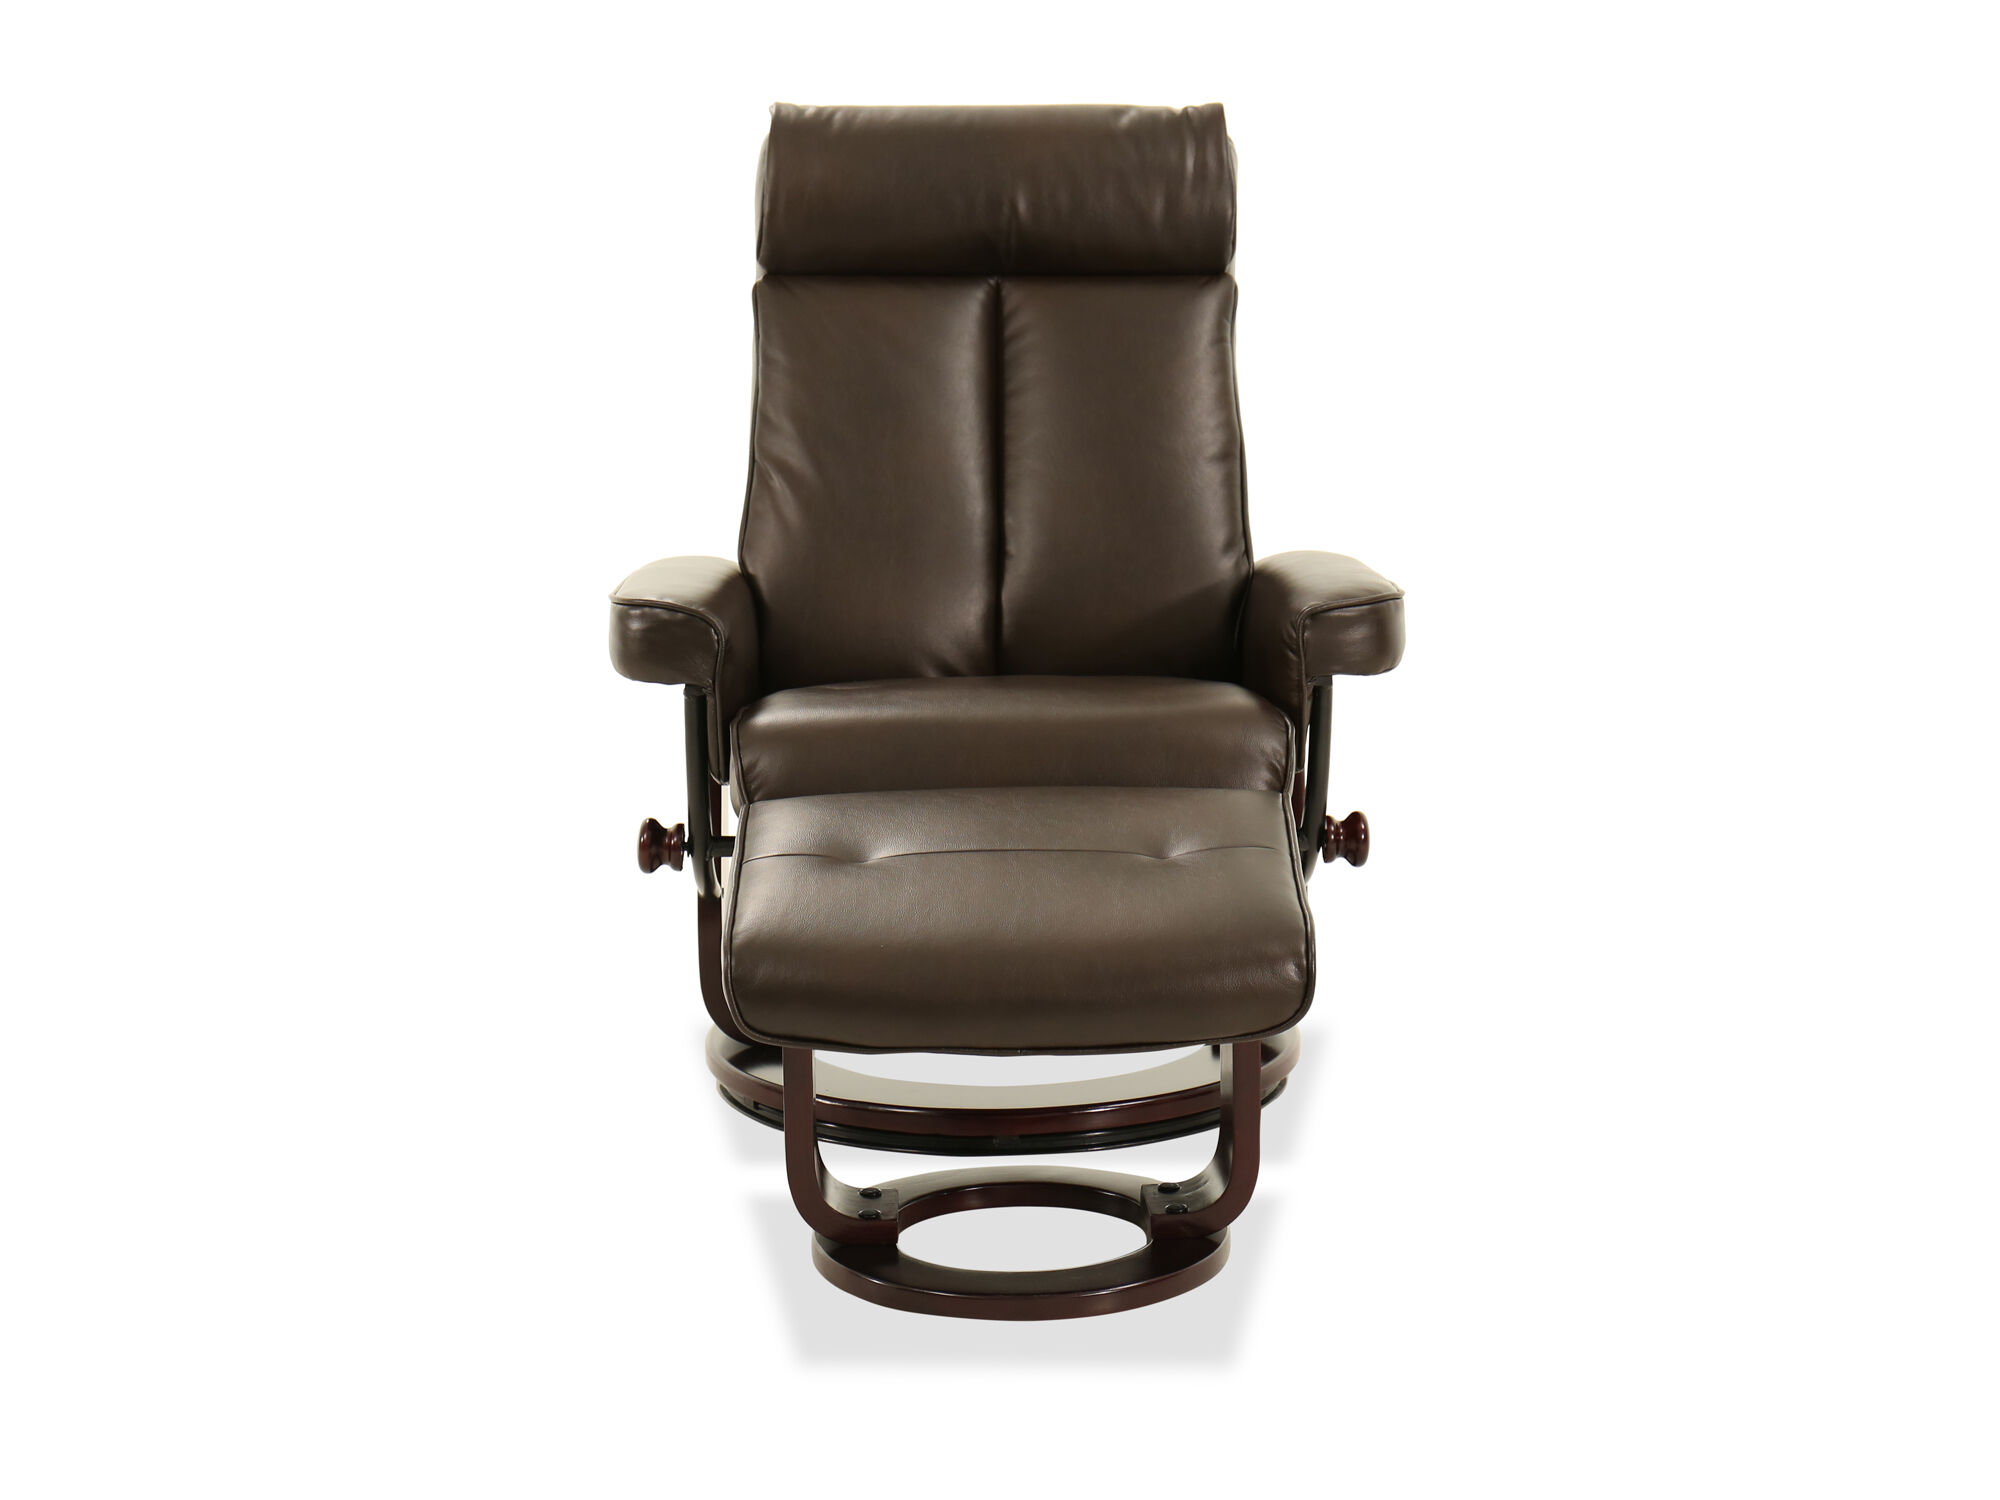 Leather Recliner Chair With Ottoman Leather Recliner Chair And Ottoman In Brown Mathis Brothers